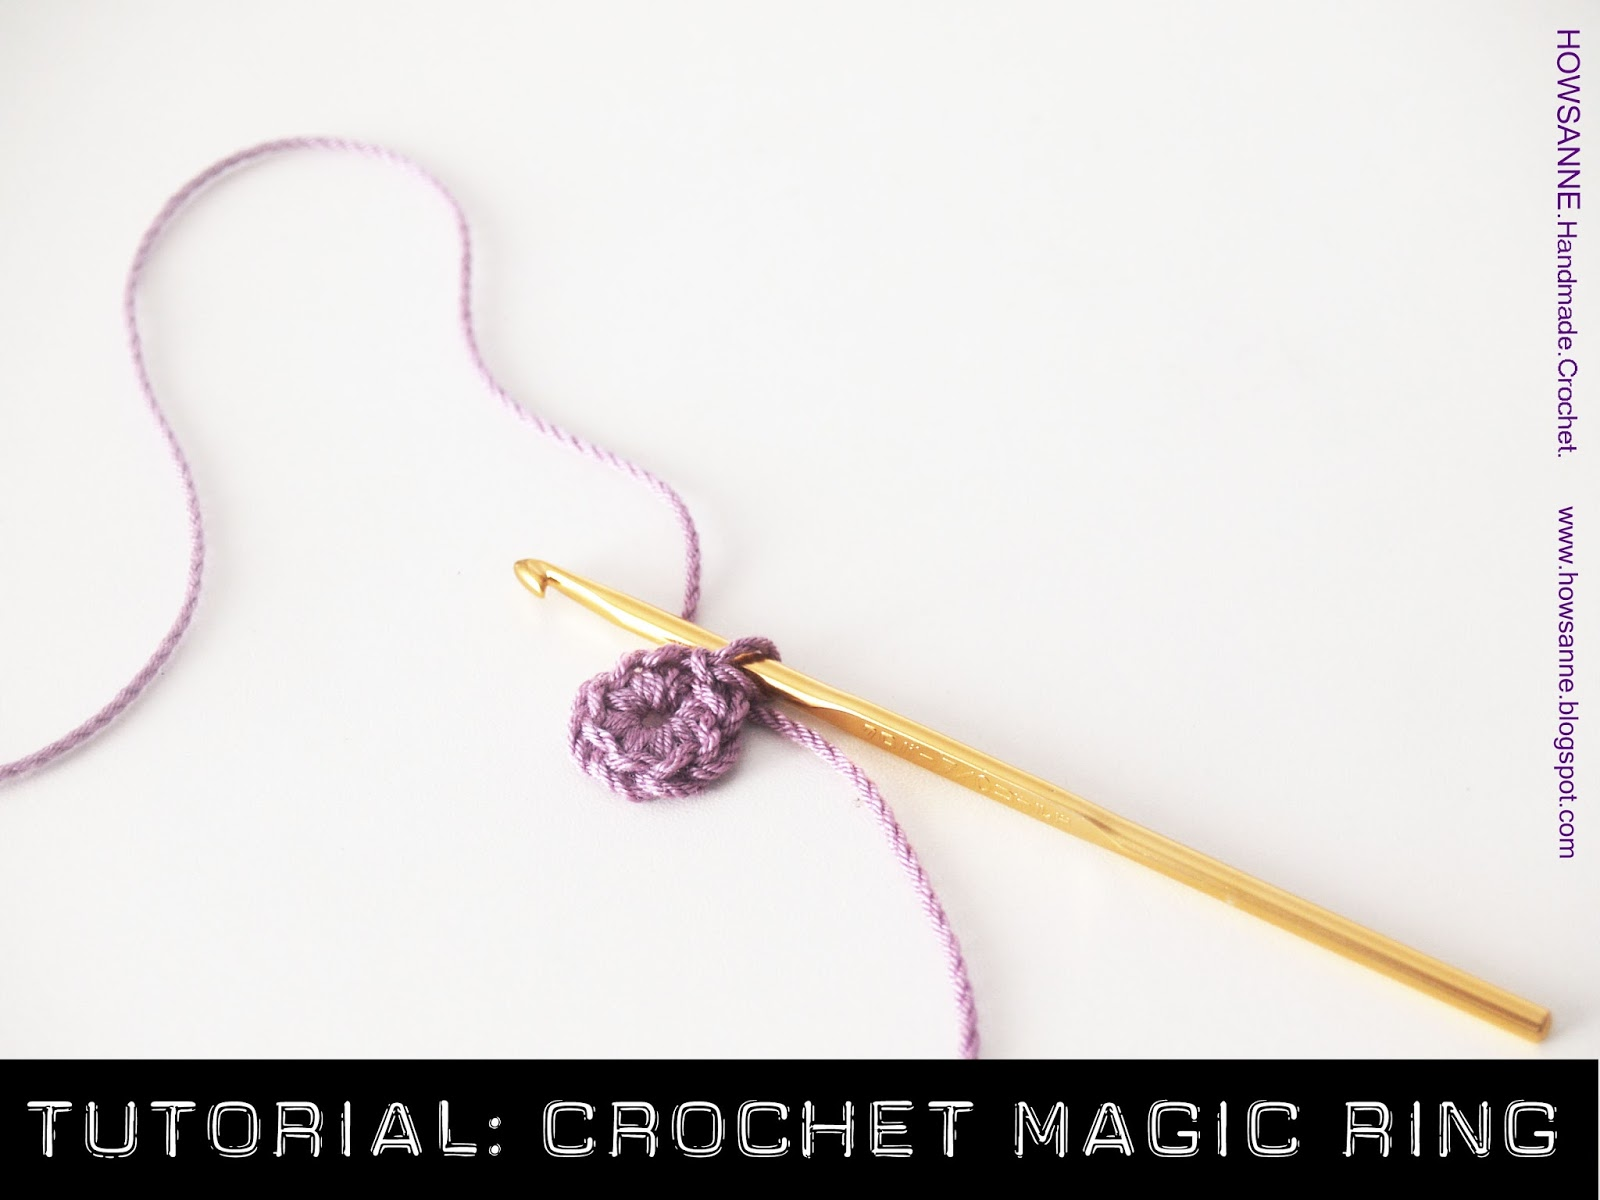 Howsanne handmade crochet tutorial how to crochet a magic ring howsanne handmade crochet magic circle step by step instruction with photo guide baditri Images